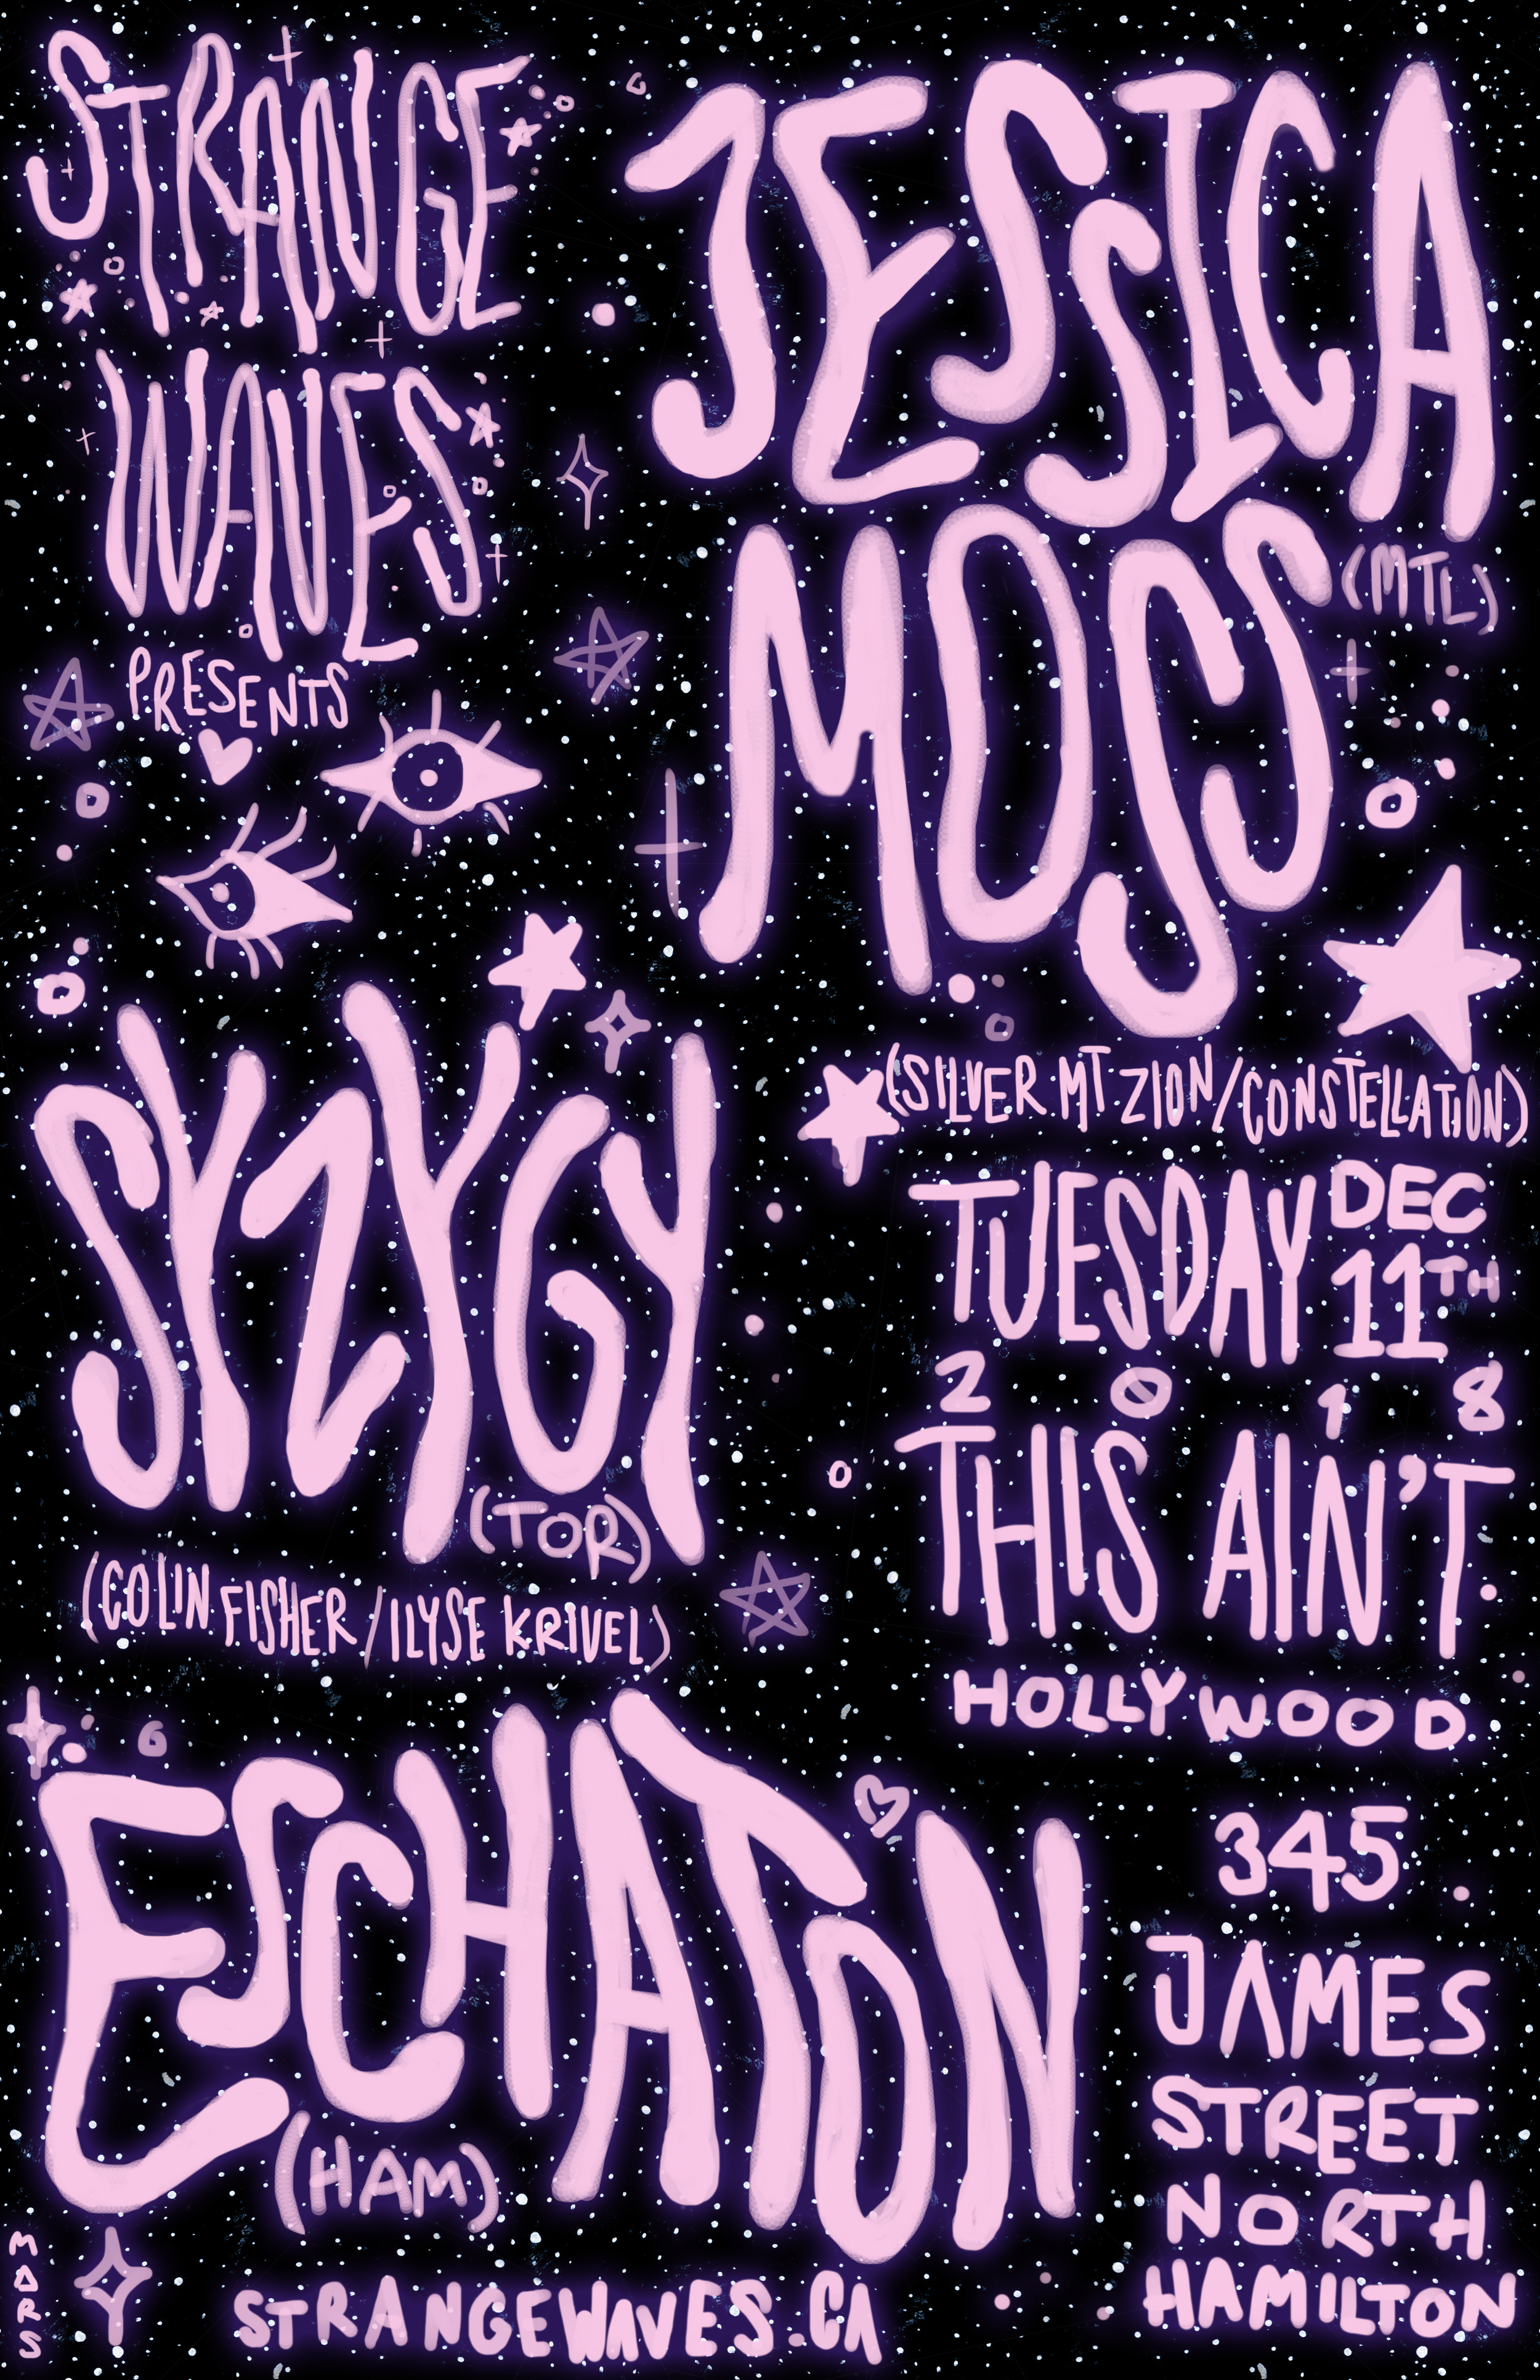 Jessica Moss w/ Syzygy & Eschaton  @This Ain't Hollywood